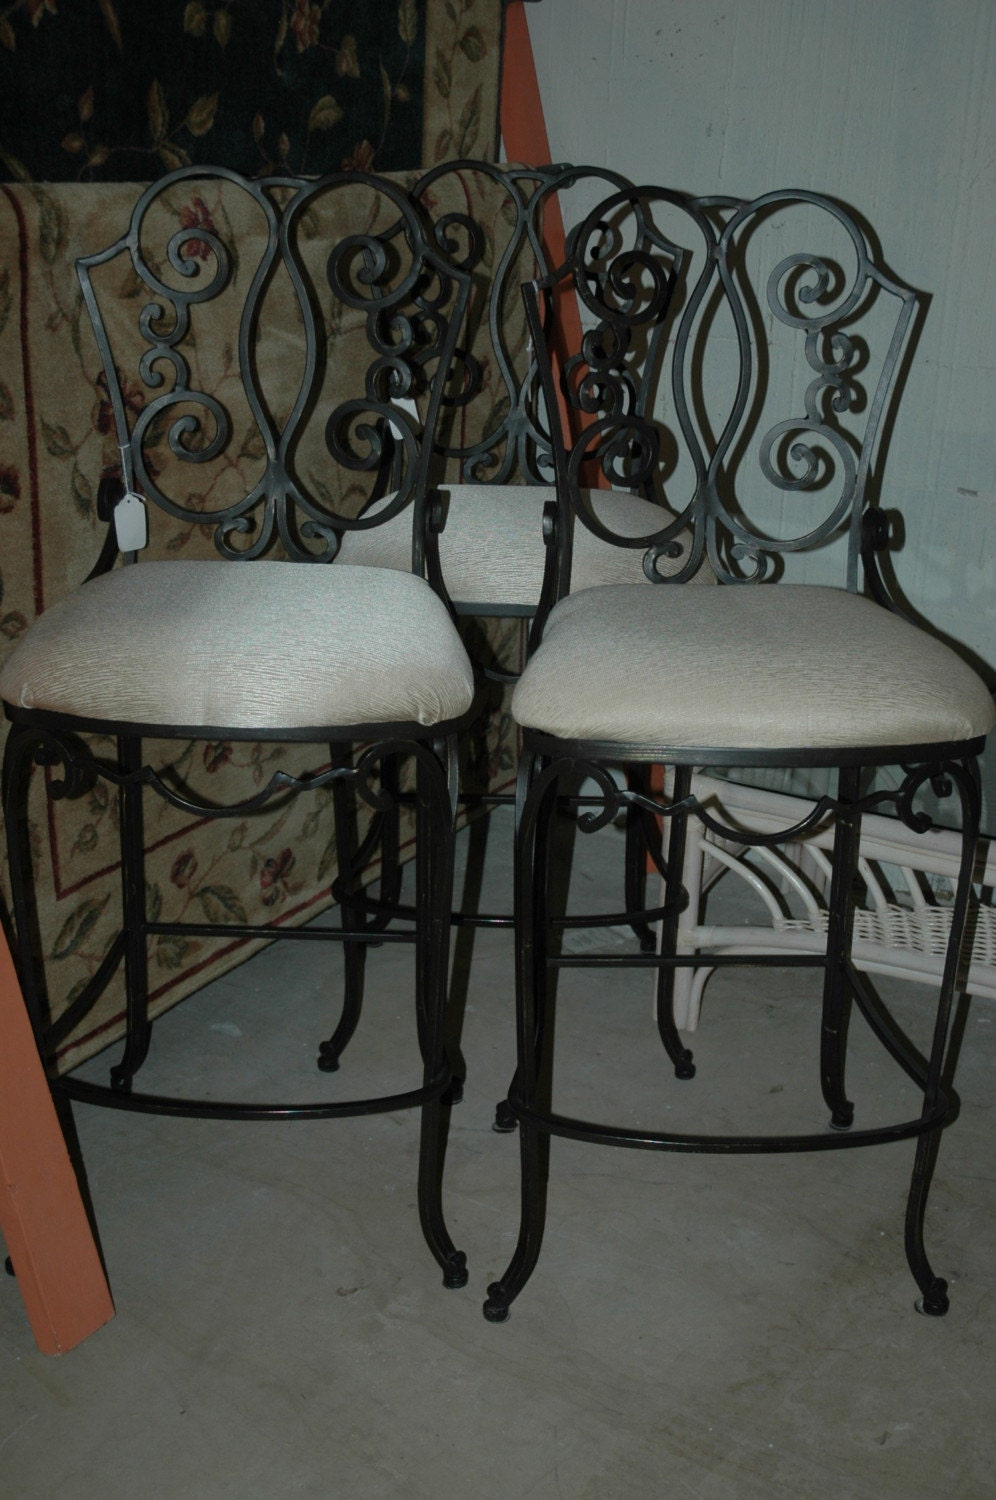 Scrolled heavy wrought iron bar stools ecru color cushions